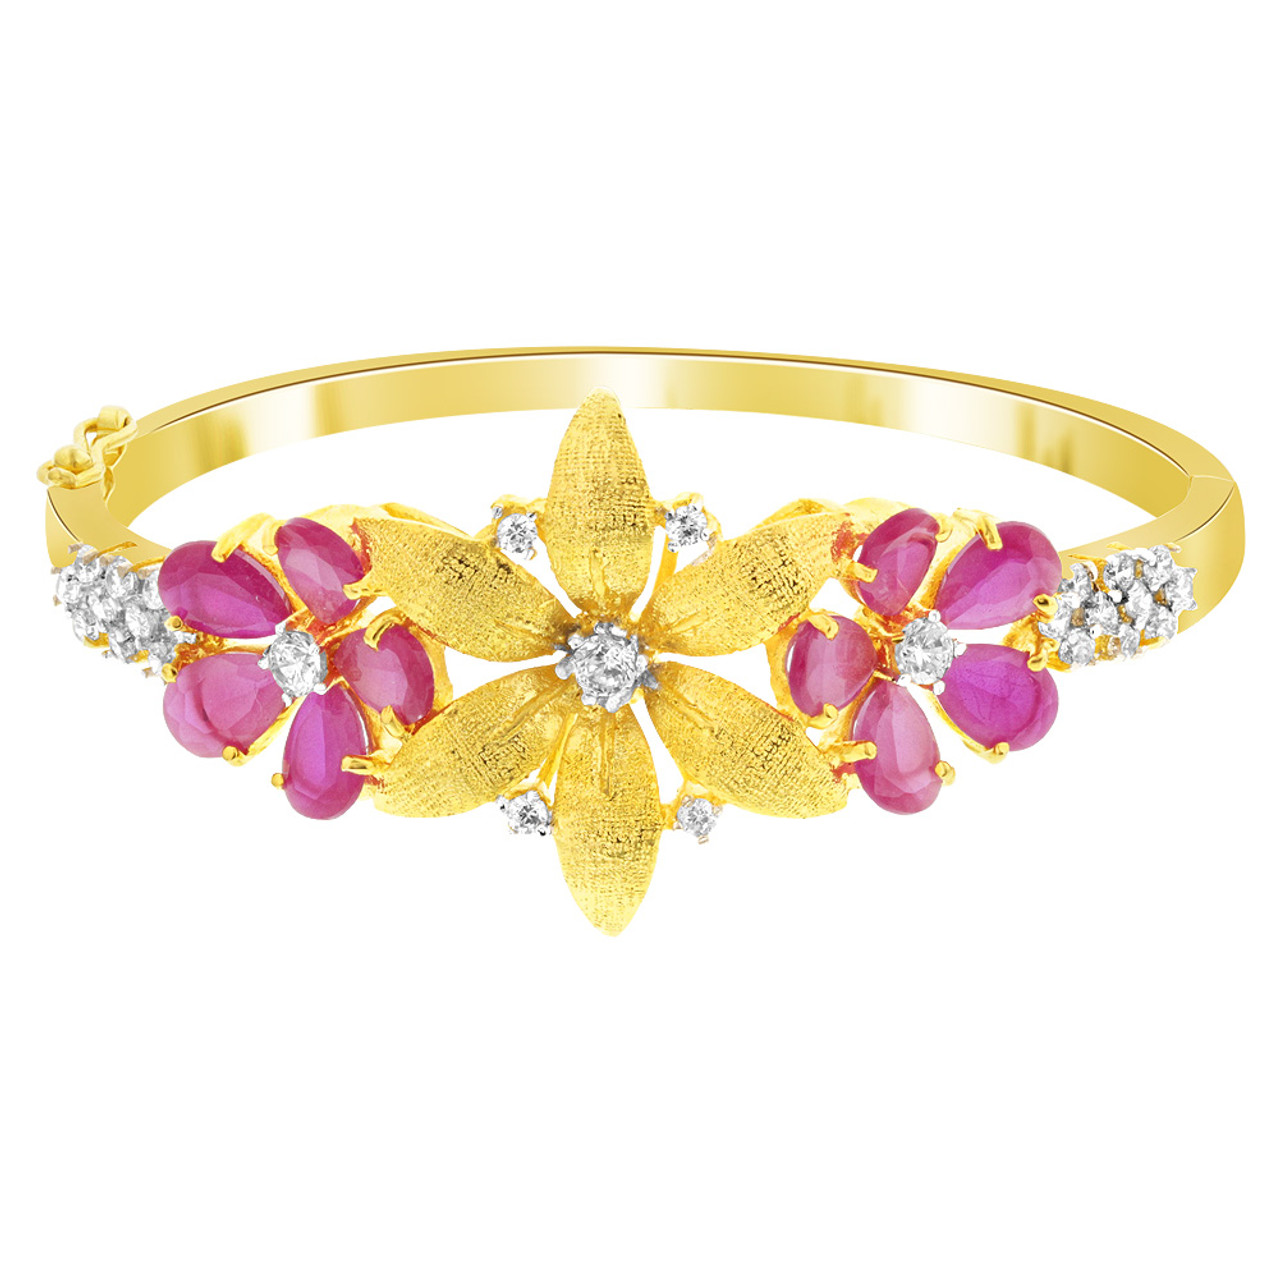 Flower Shape Cubic Zirconia Ruby Glass Gold Plated Bangle Bracelet